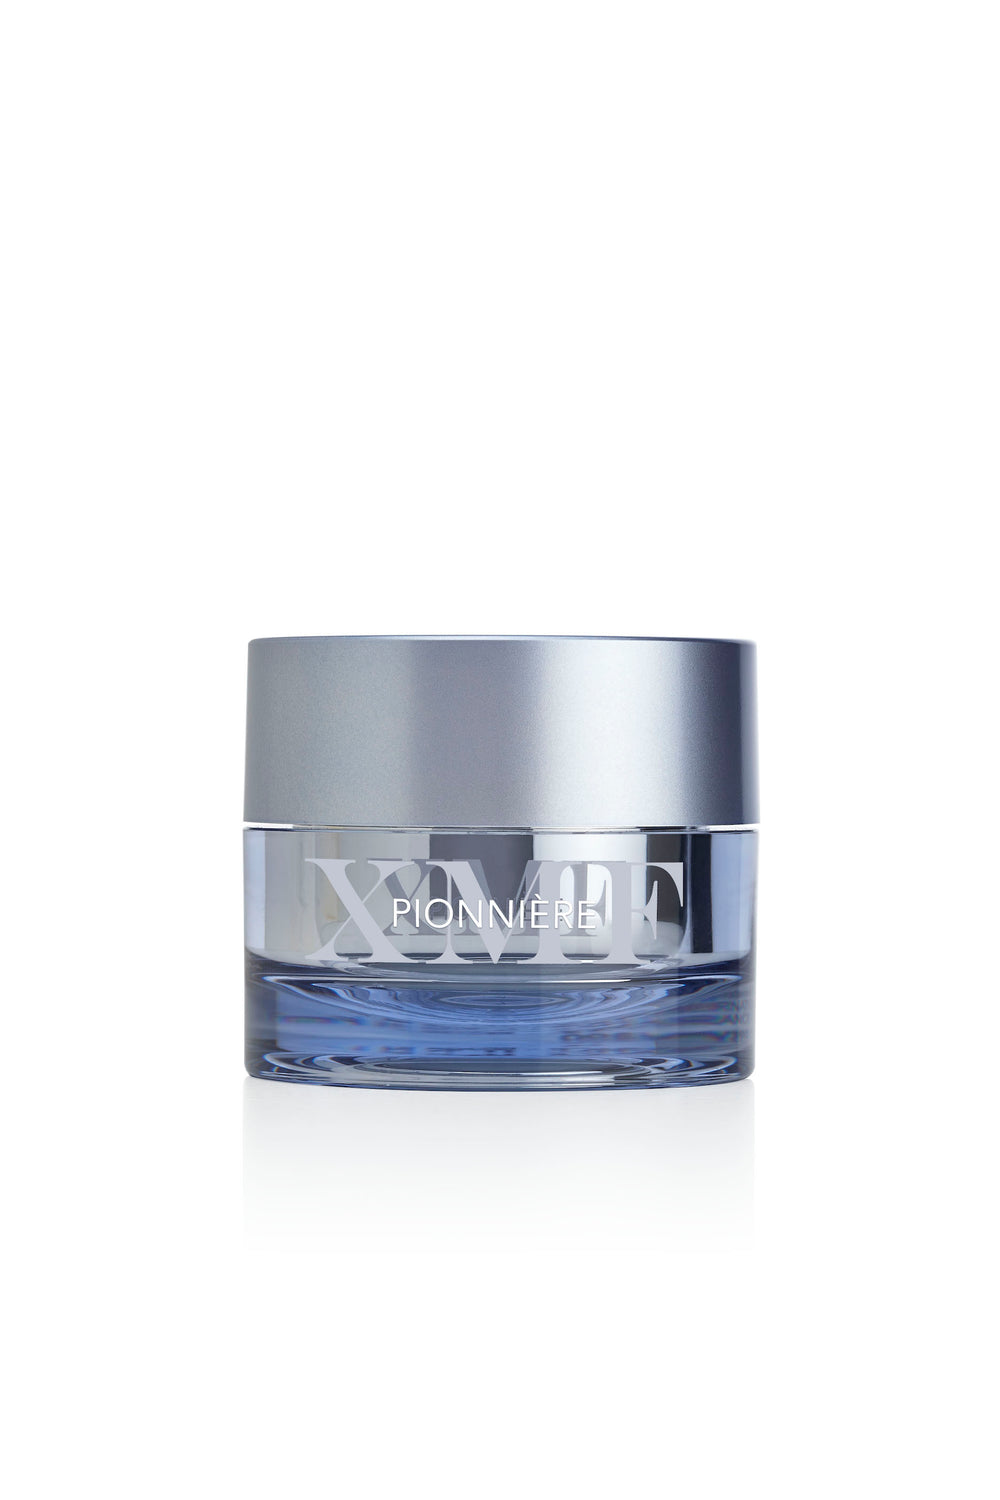 PIONNIERE XMF - Perfection Youth Cream - 50ml